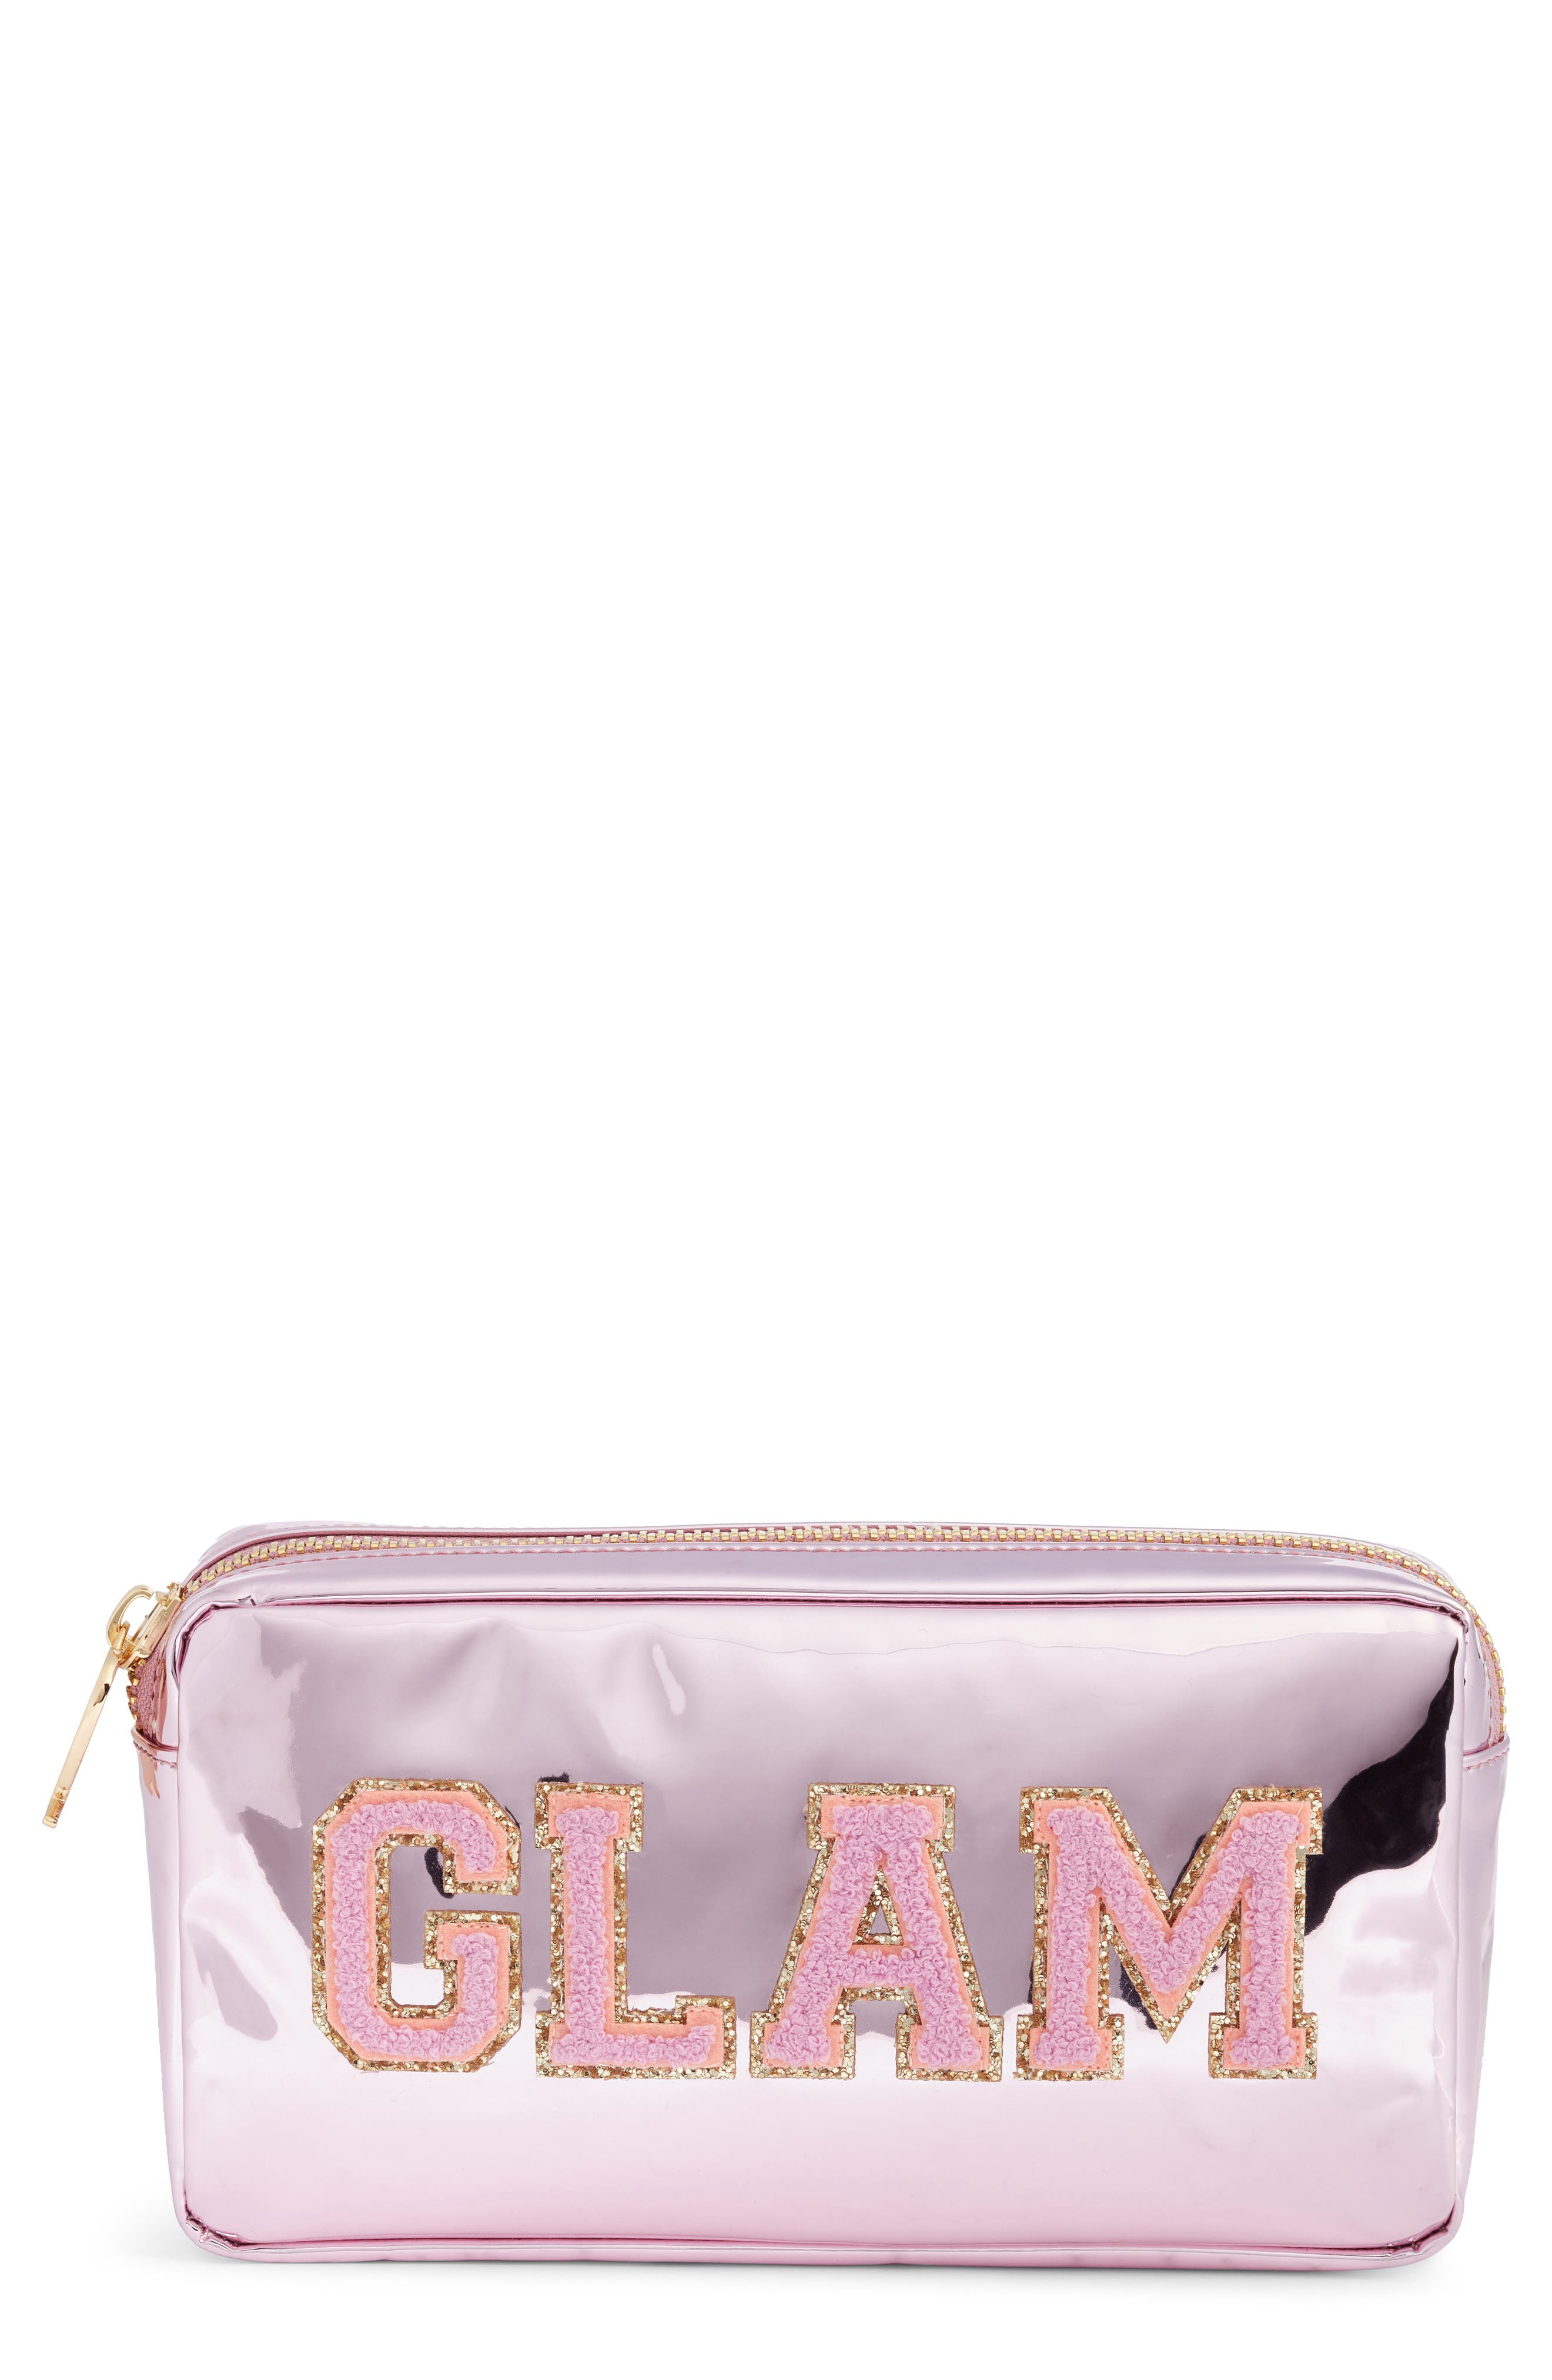 Small Patent Pouch,                             Main thumbnail 1, color,                             PINK